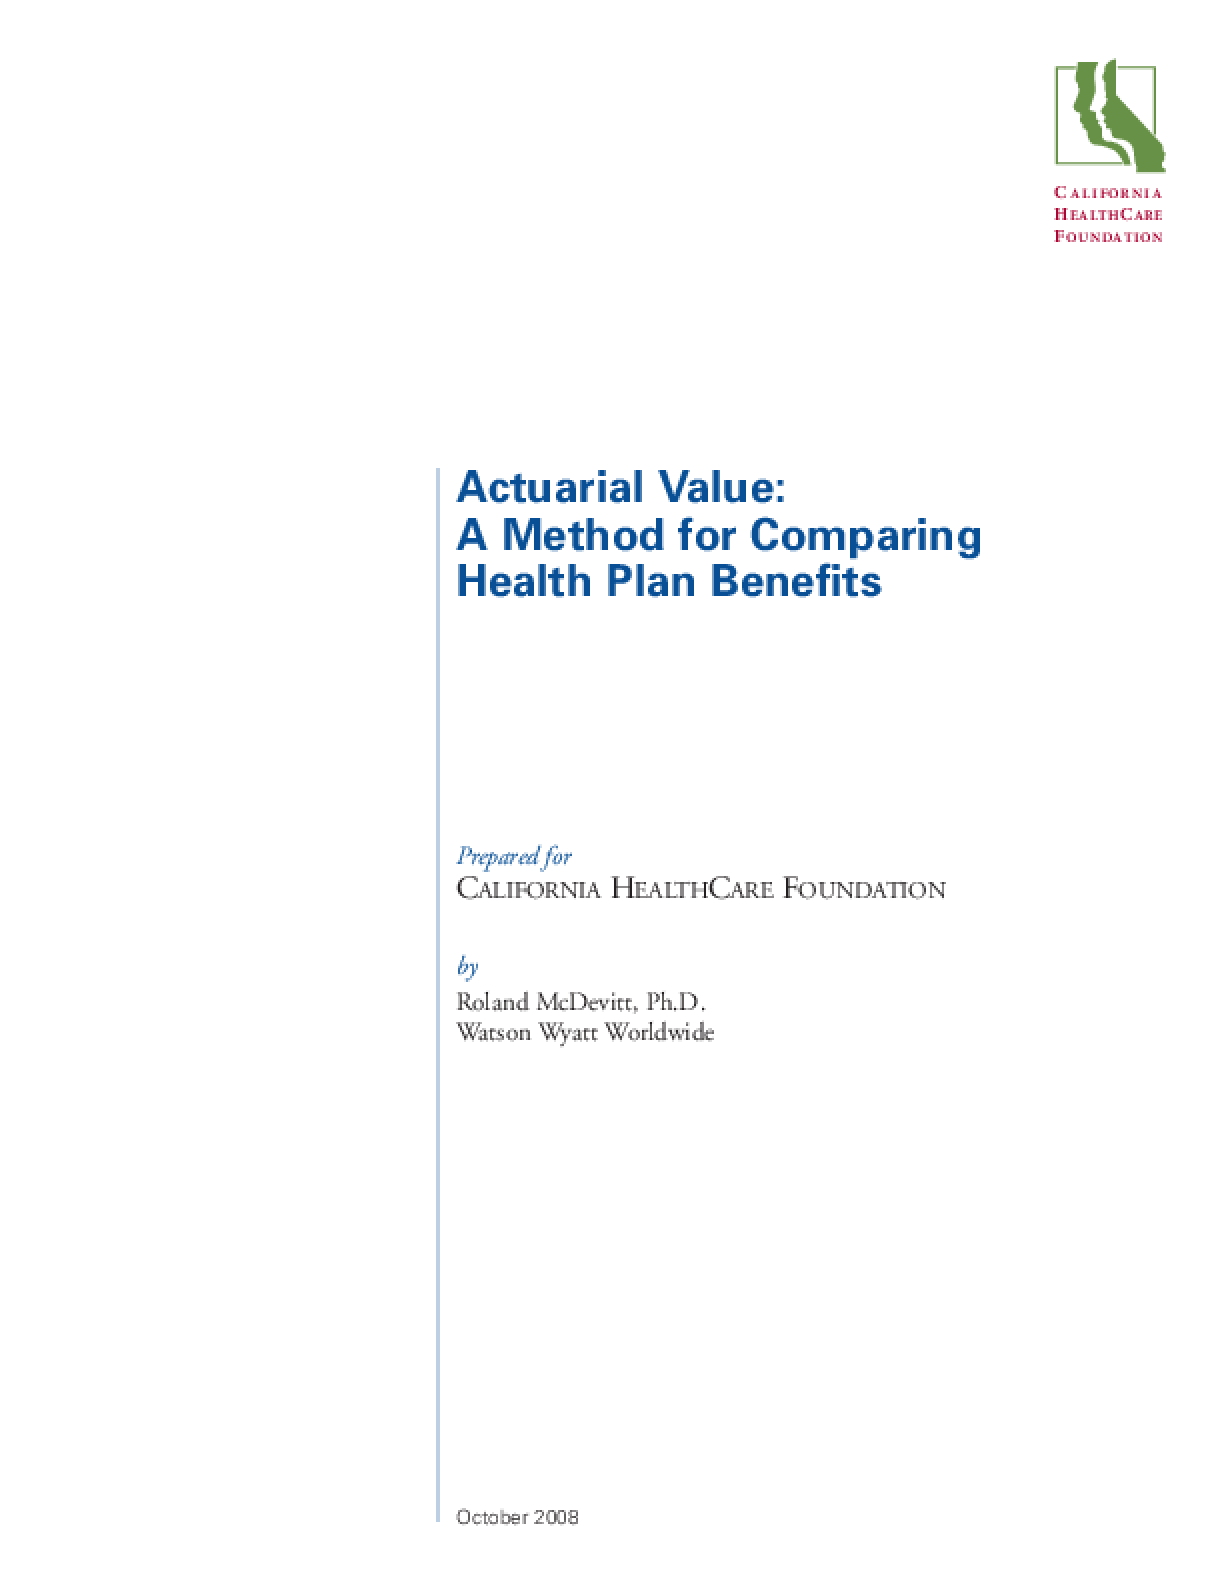 Actuarial Value: A Method for Comparing Health Plan Benefits